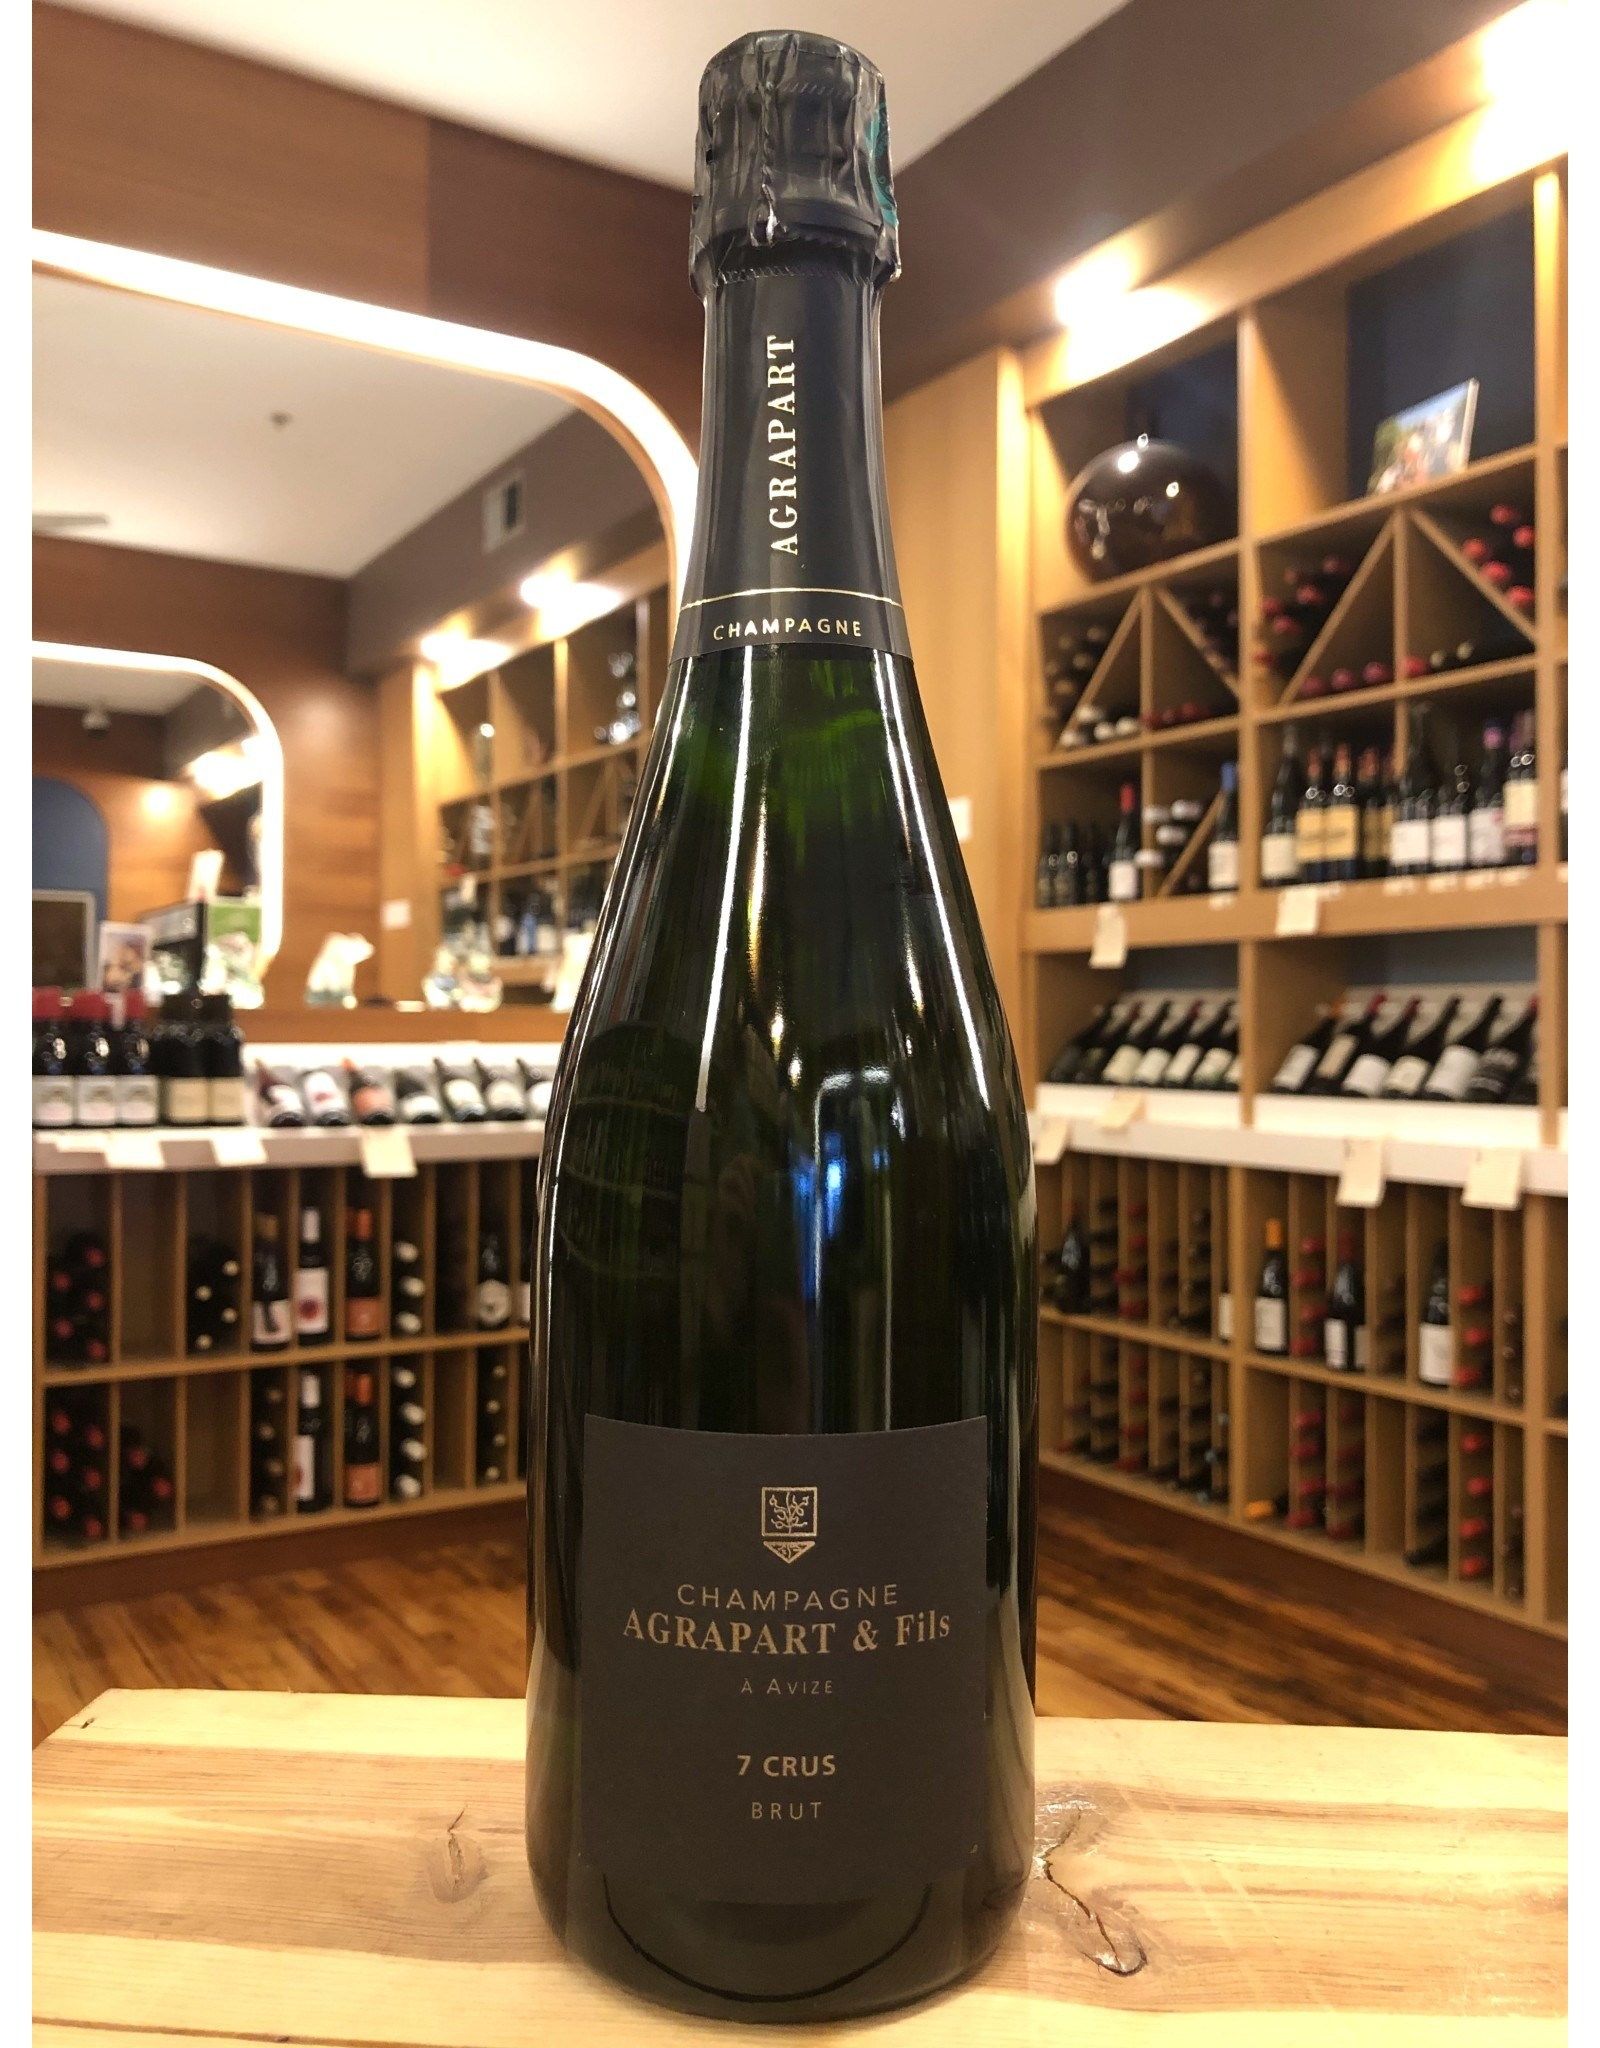 Agrapart & Fils 7 Crus Champagne - 750 ML